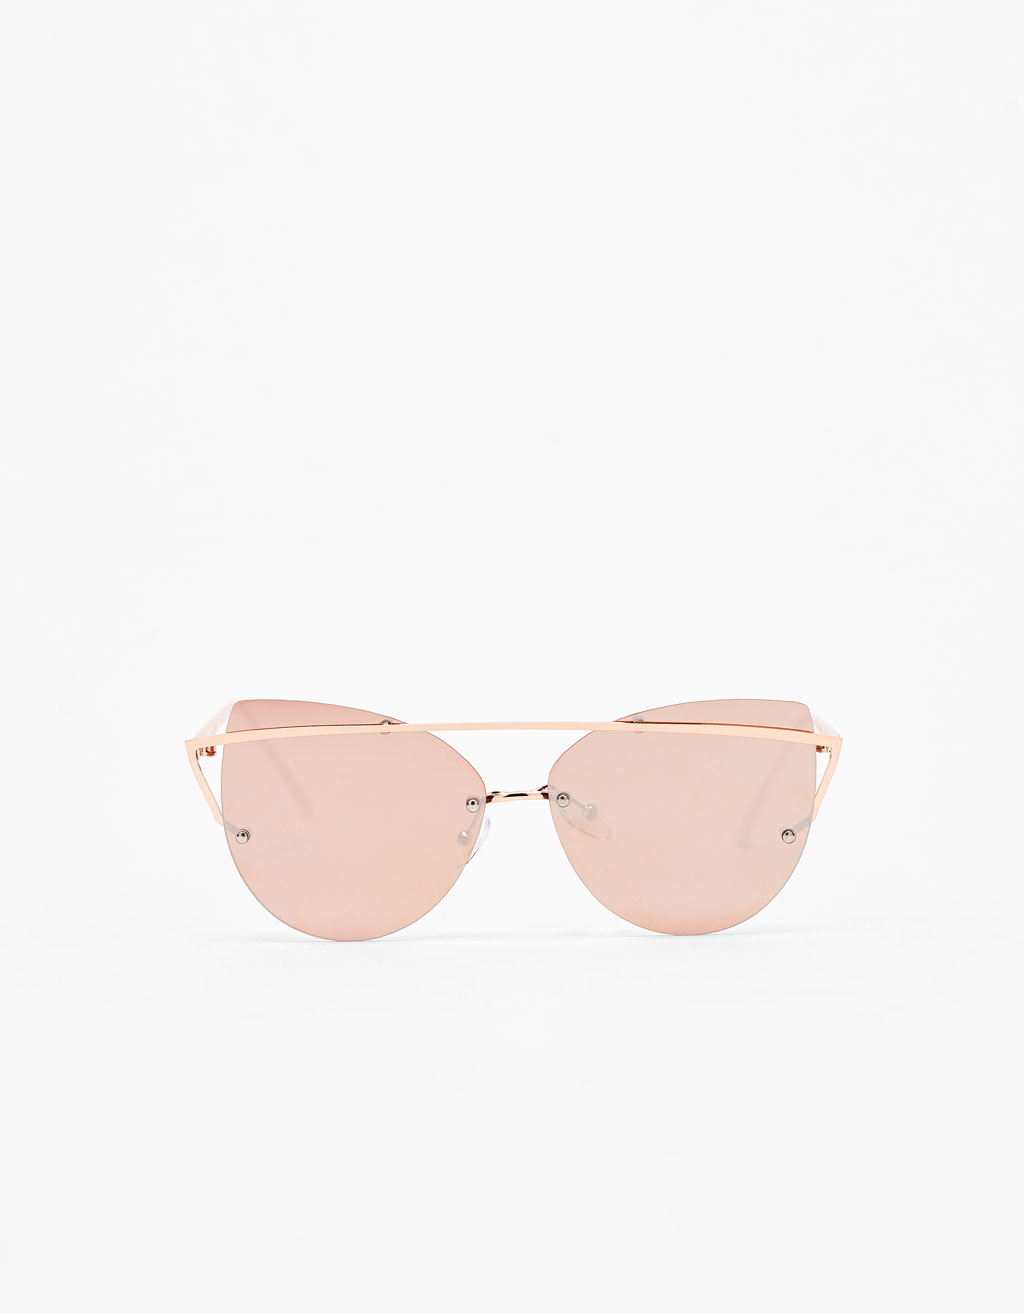 Metallic sunglasses